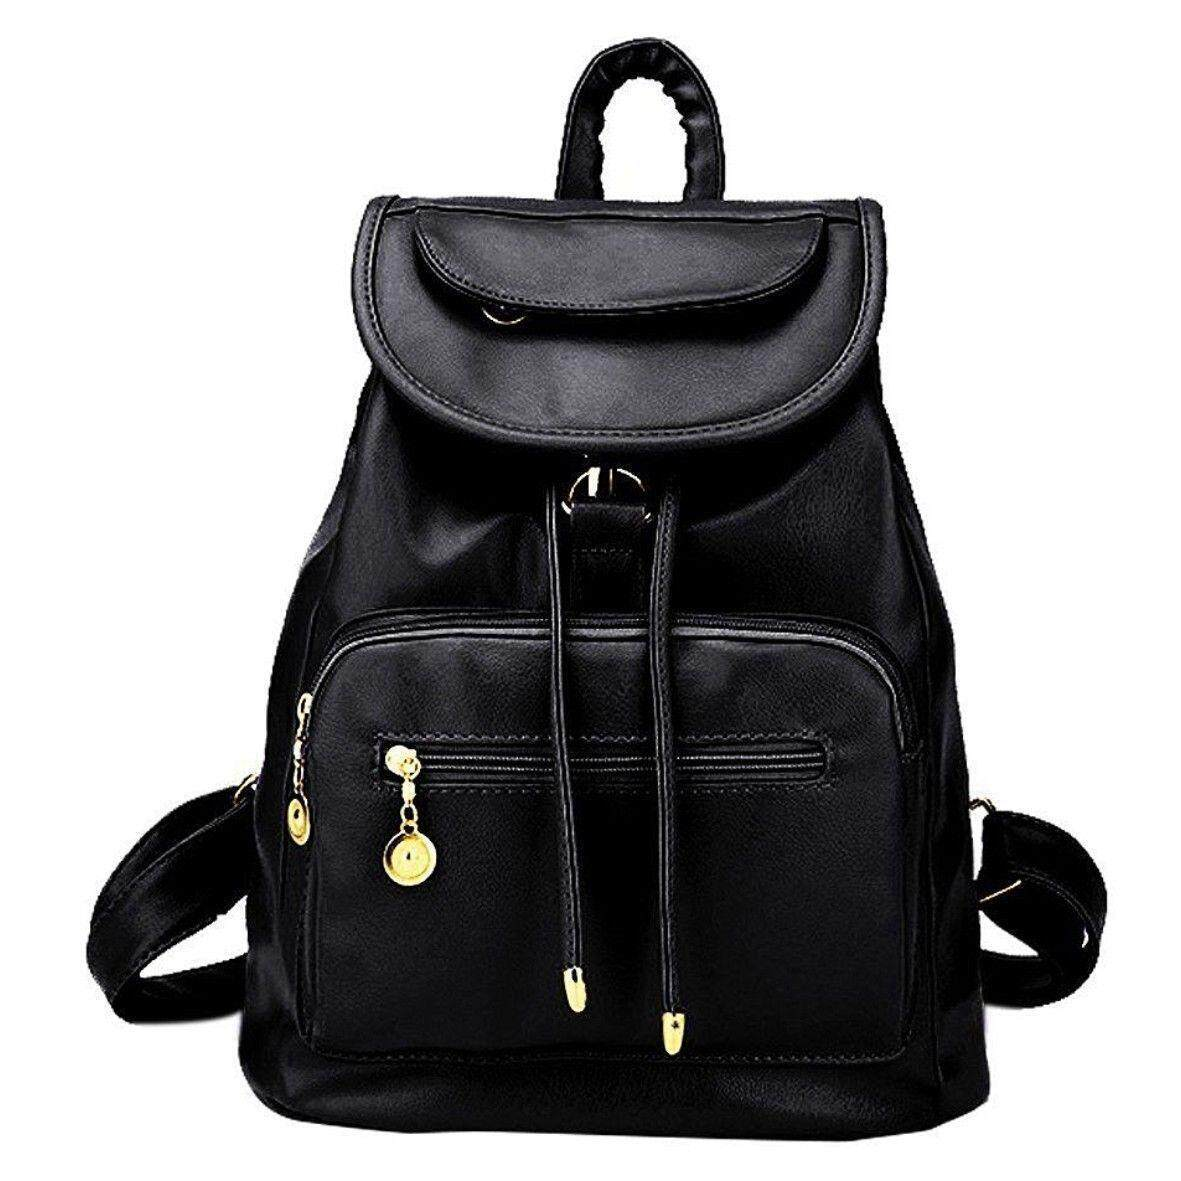 c5842e35aca7 Lady Women Leather Backpack School Rucksack College Shoulder Satchel Travel  Bag